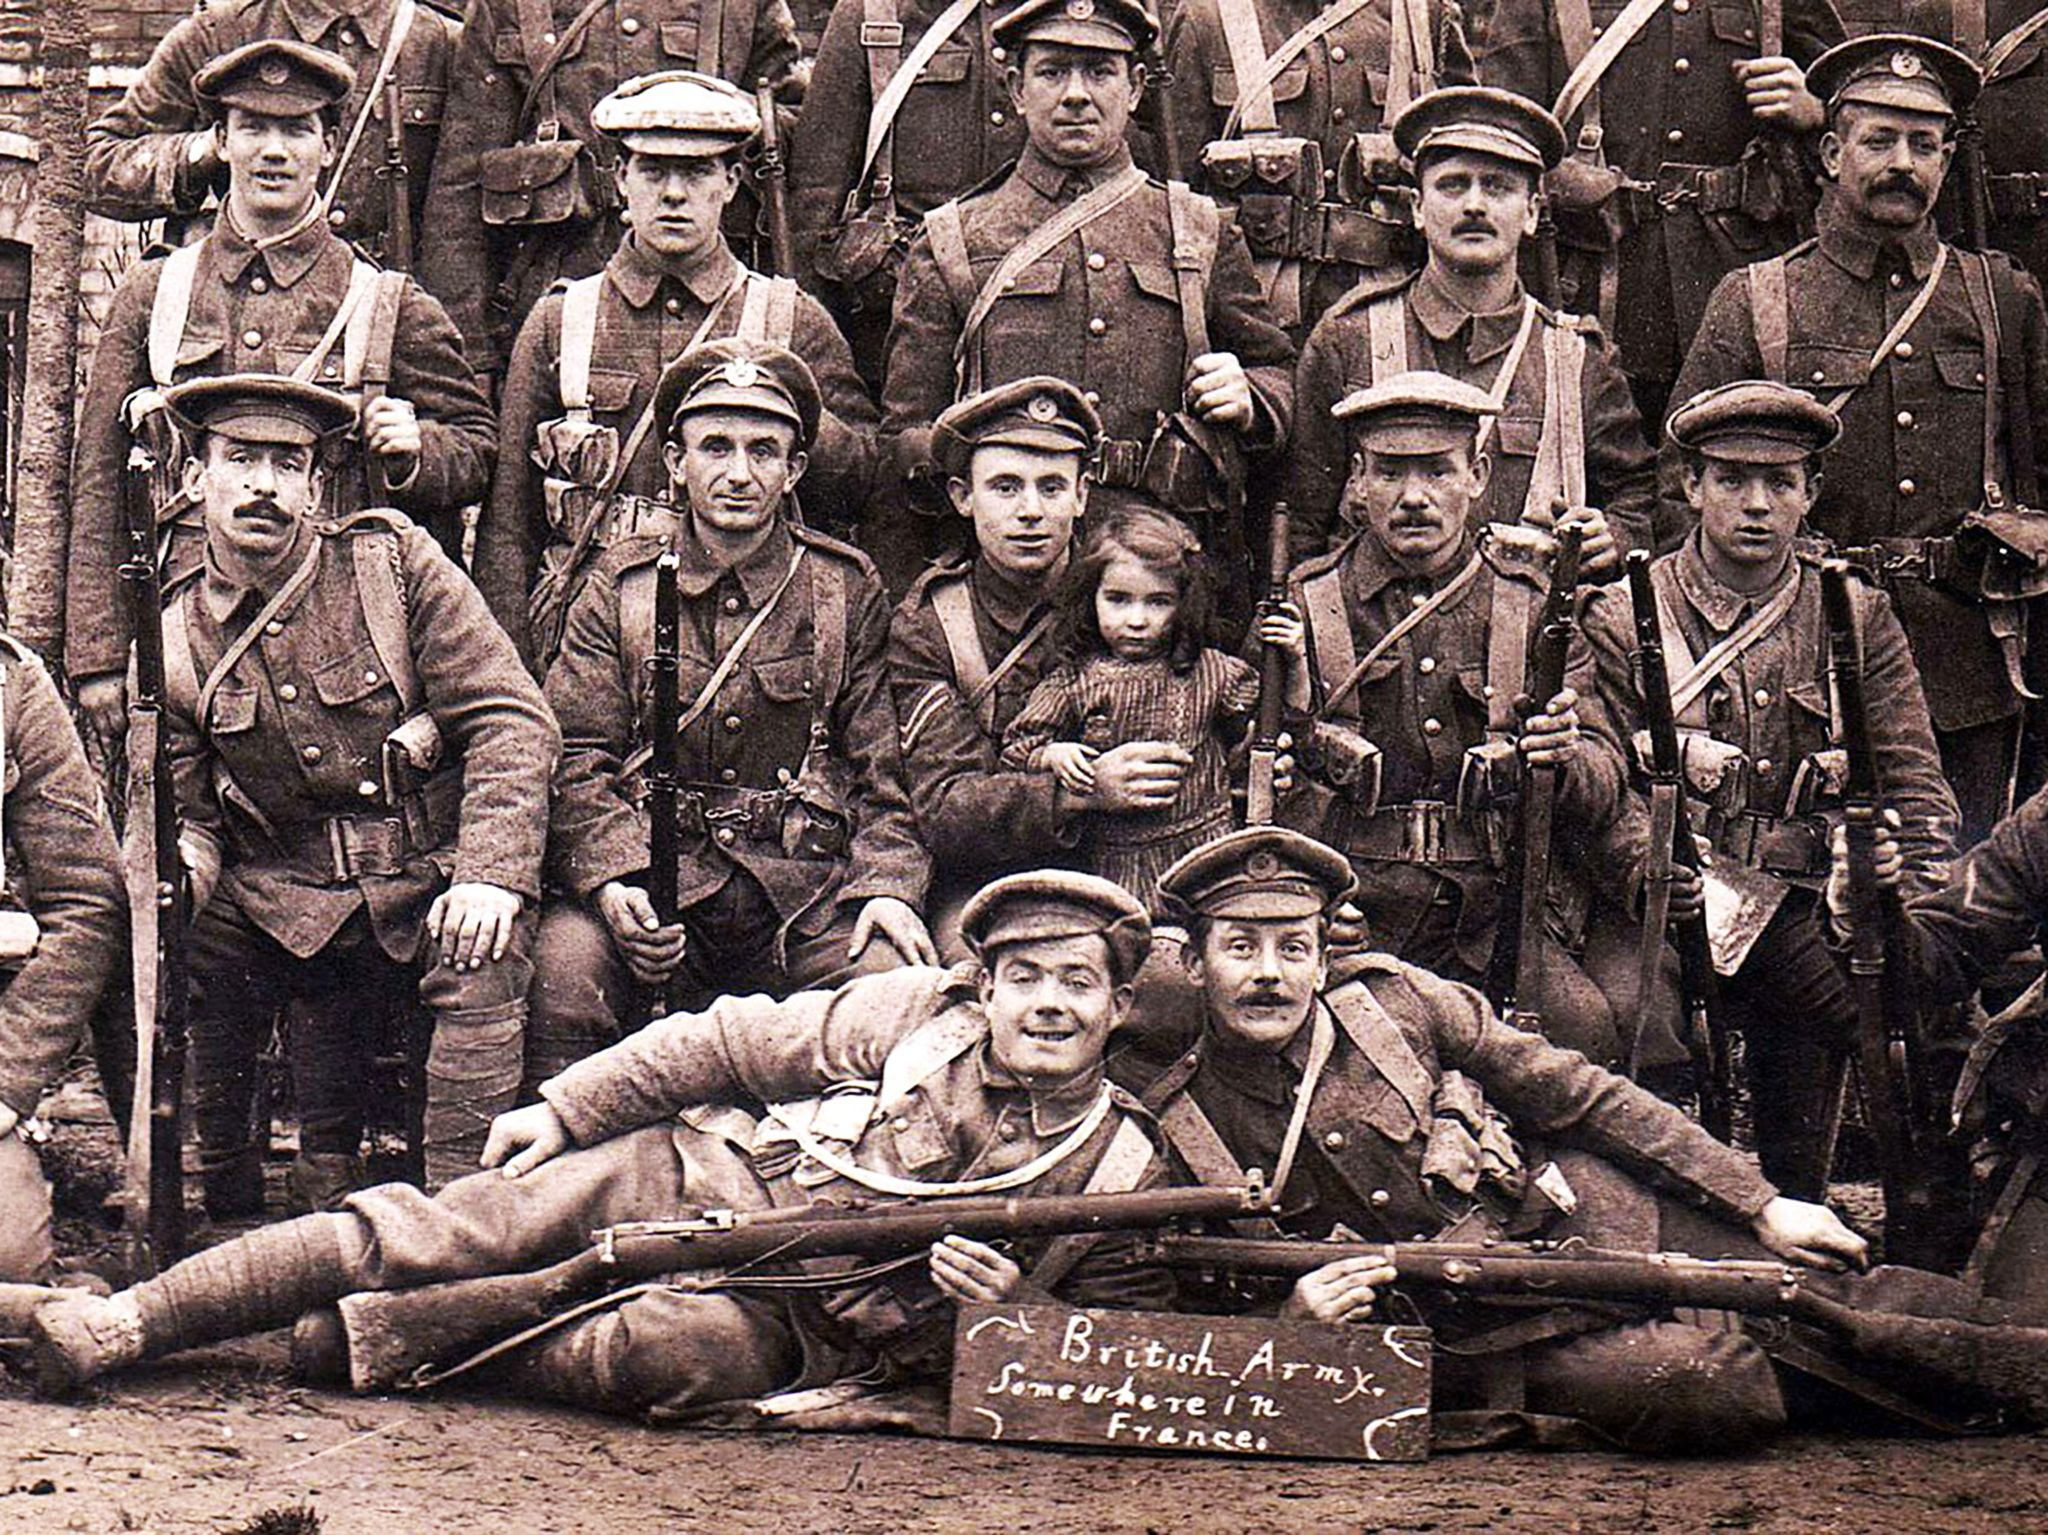 France:  Picture of the British Army. This image is from WWI: The Tunnels of Death. [Foto del giorno - November 2018]